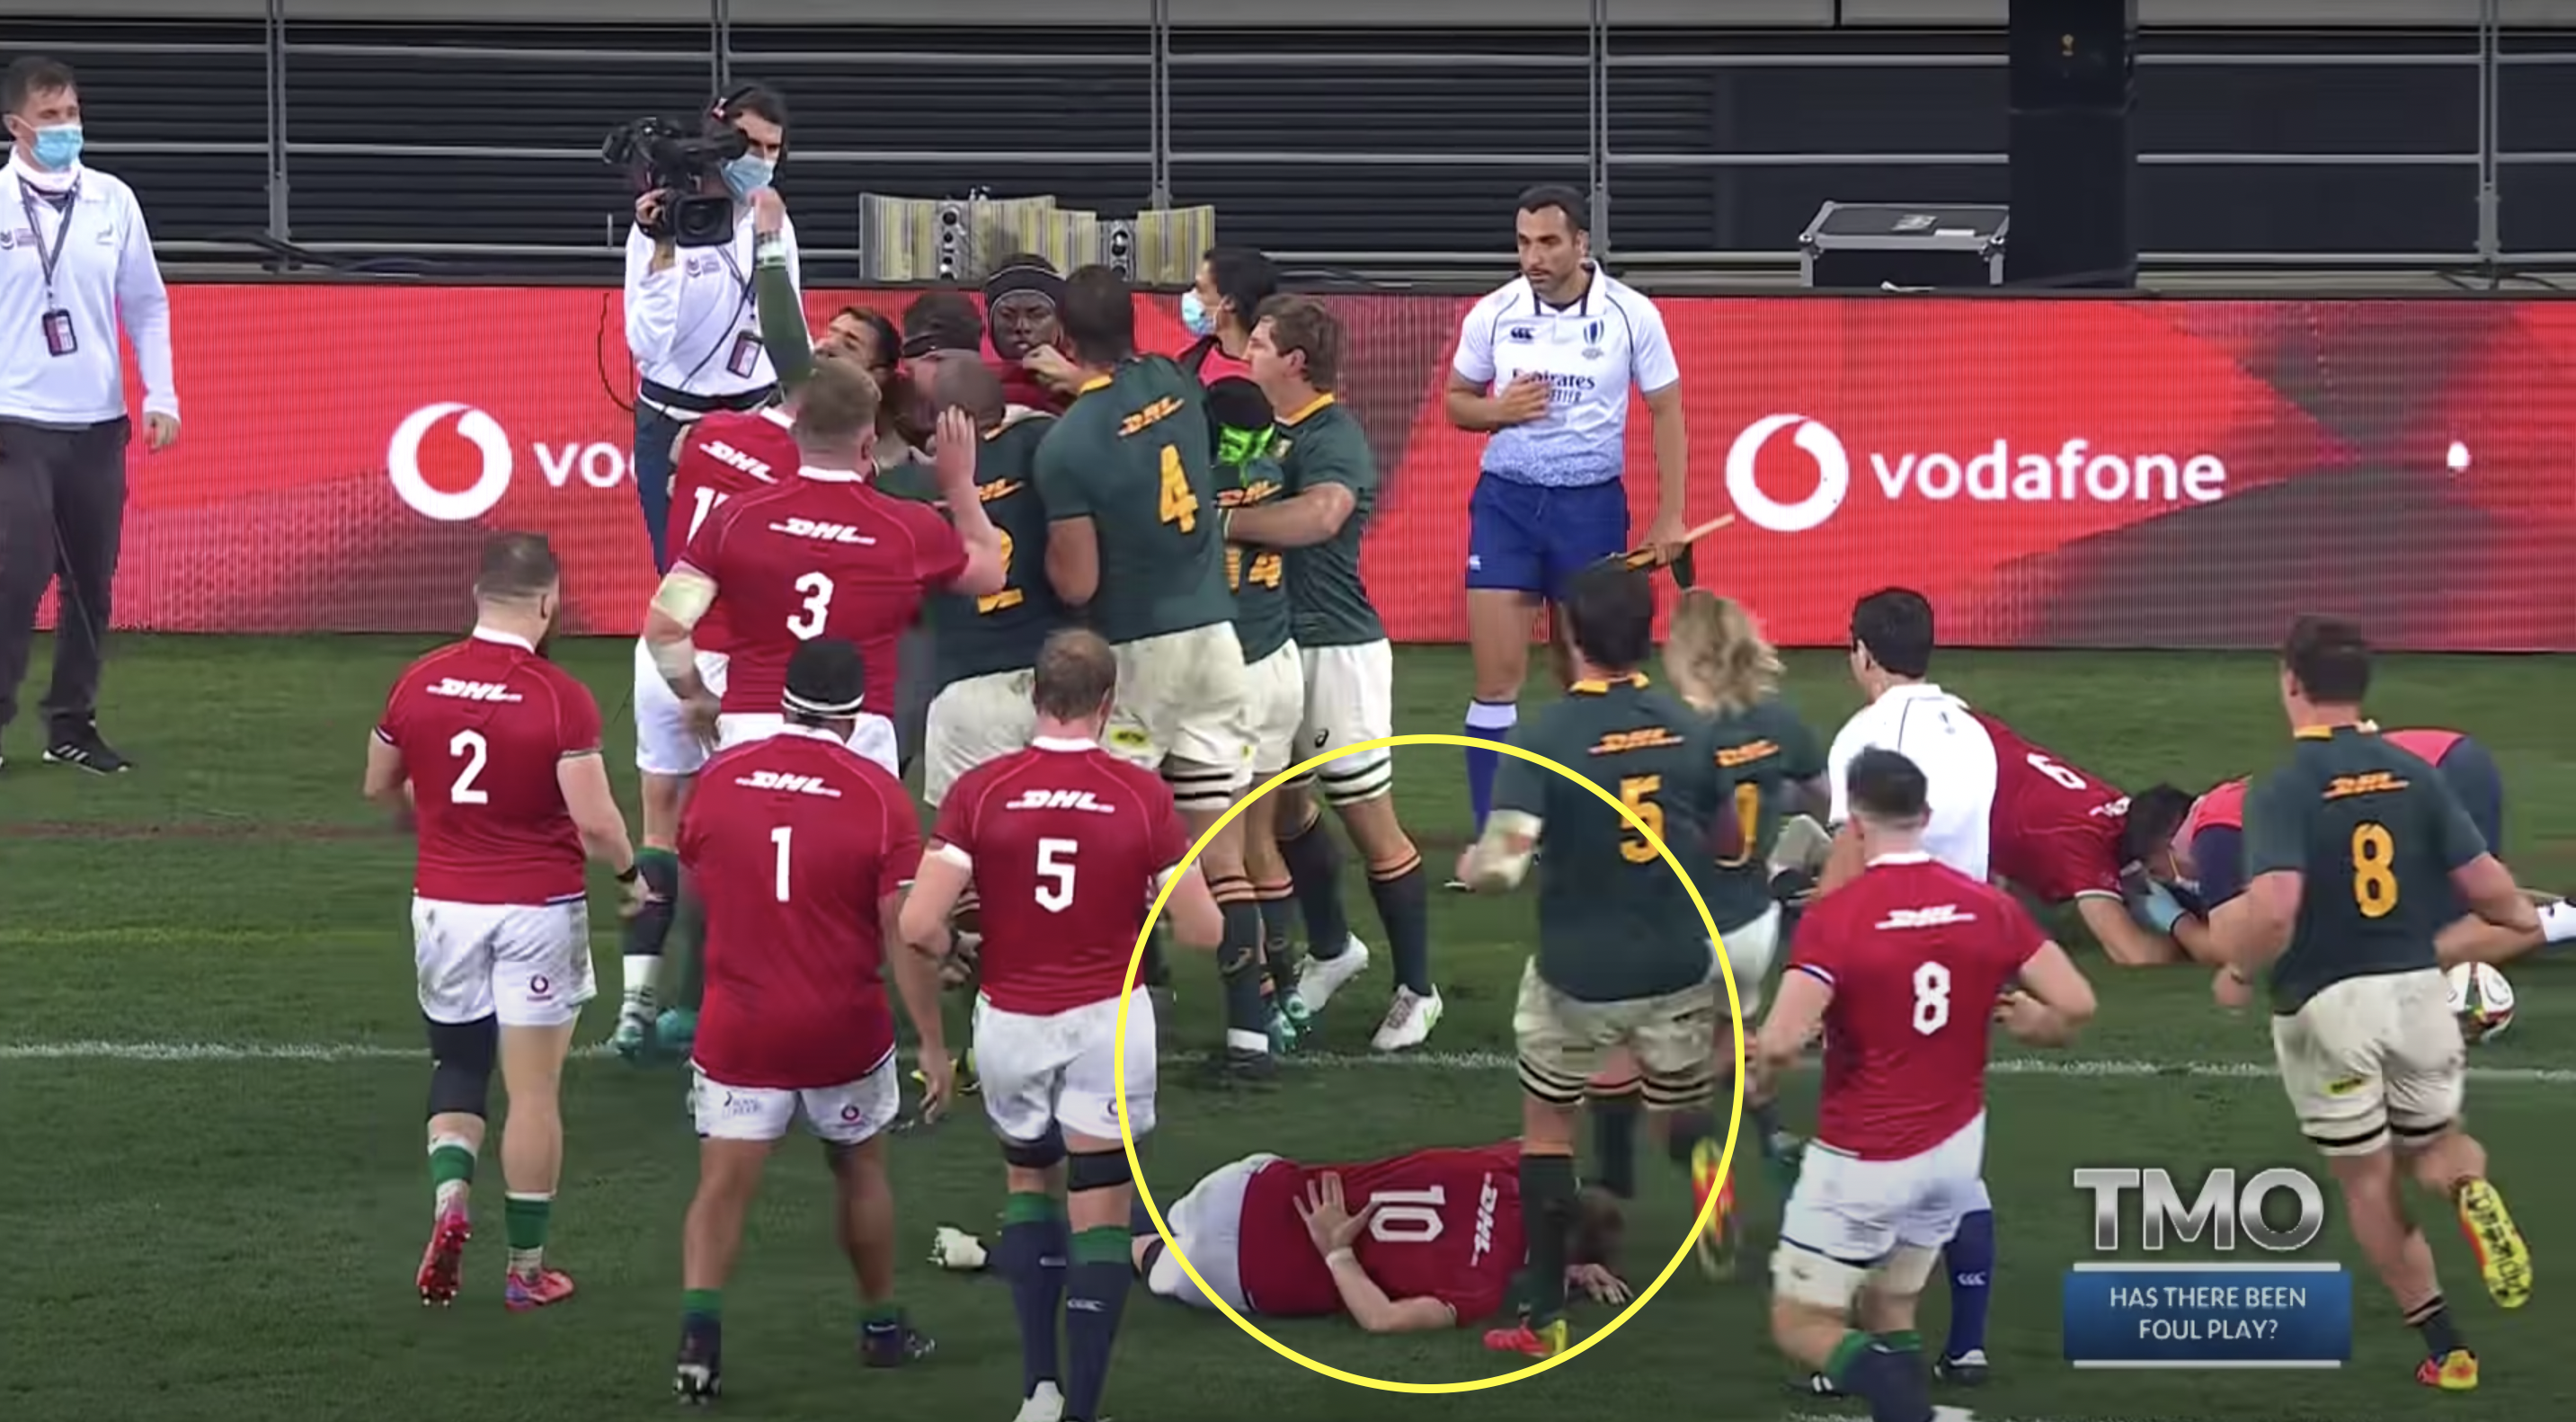 Bok gets away with heinous cheap shot which could have ended a Lion's tour